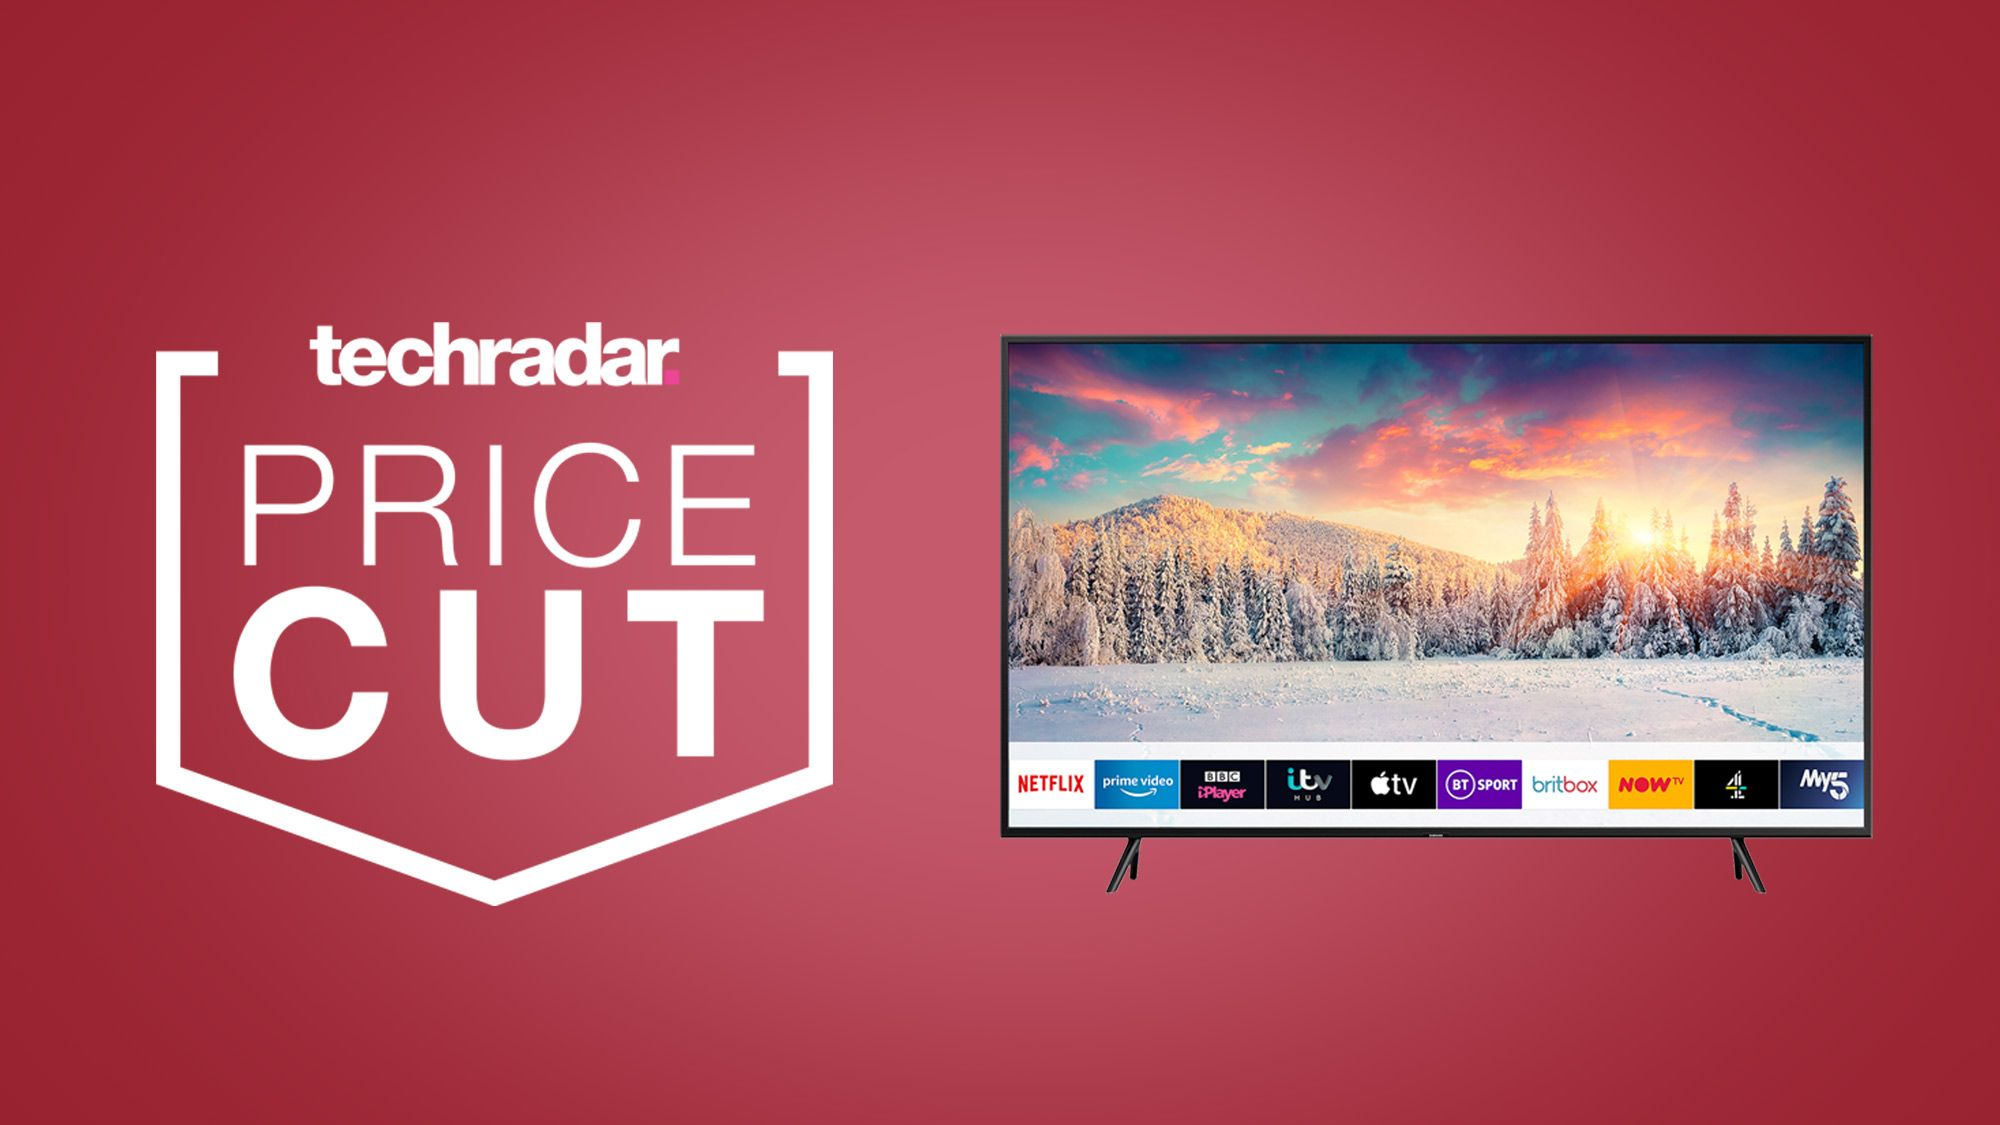 Christmas TV has never looked so good this Samsung 4K TV